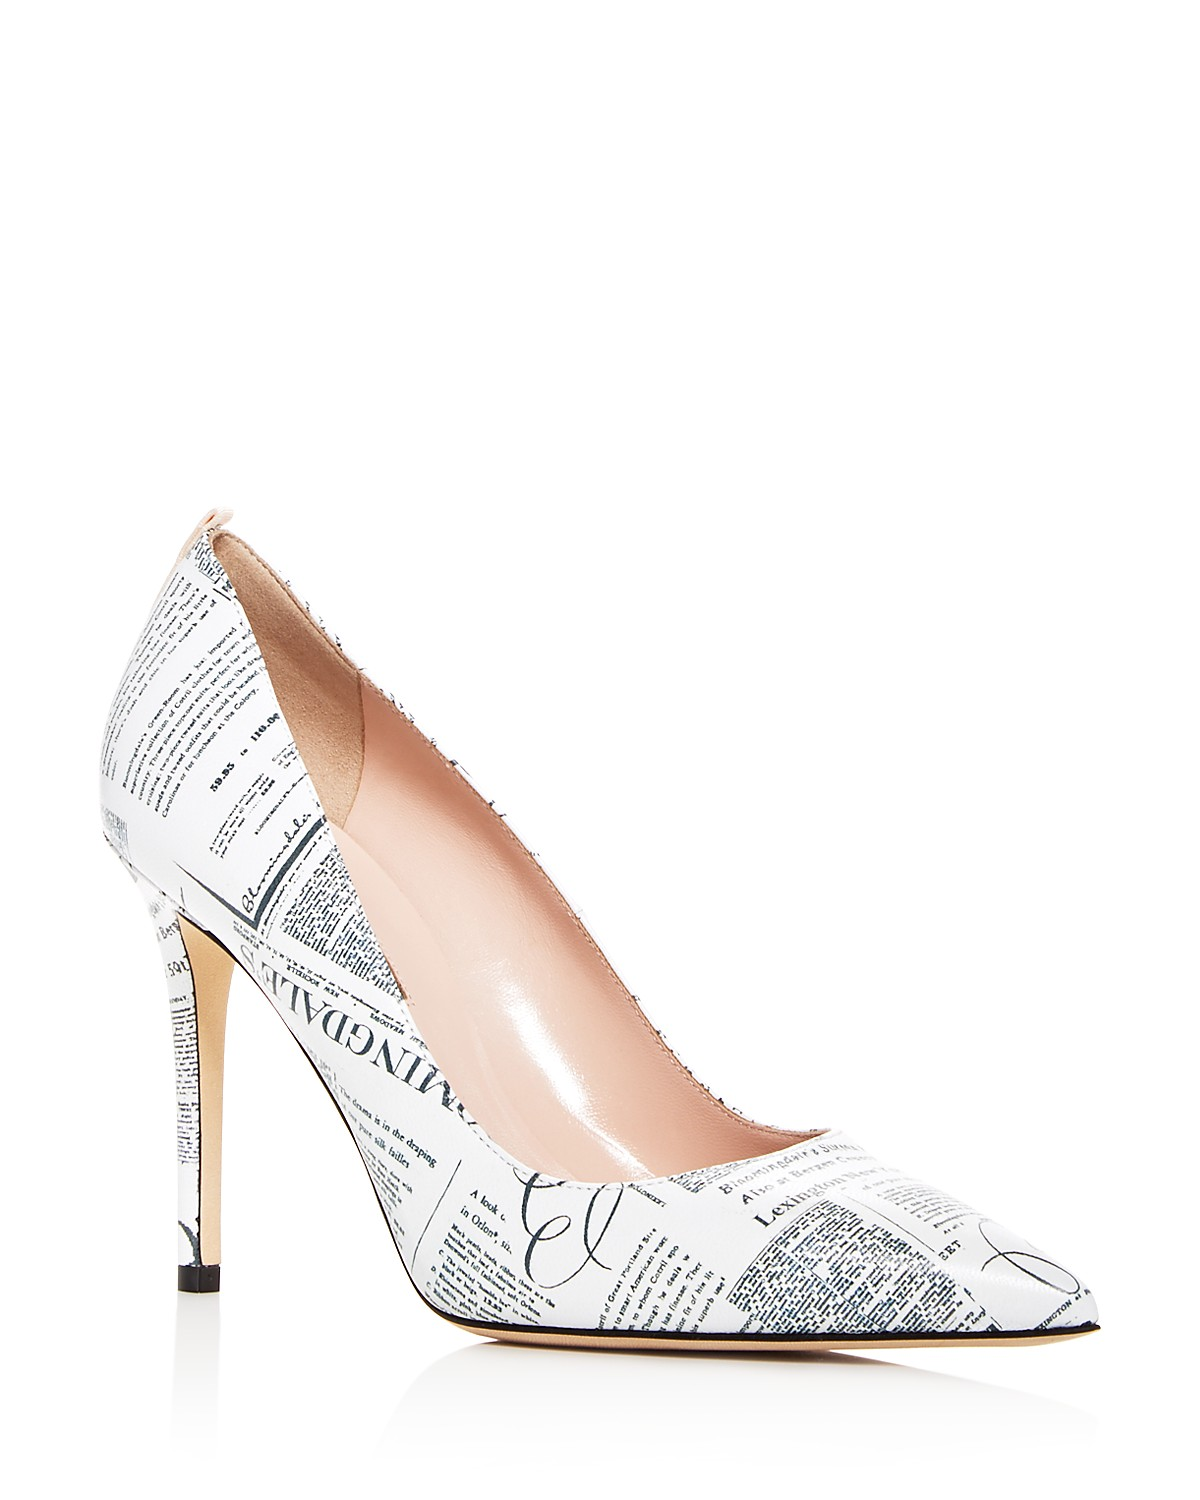 Extremely Outlet Deals Sjp Women's Fawn Bloomingdale's Leather Pumps - 100% Exclusive Discount Clearance Outlet Sast The Best Store To Get doo6vu